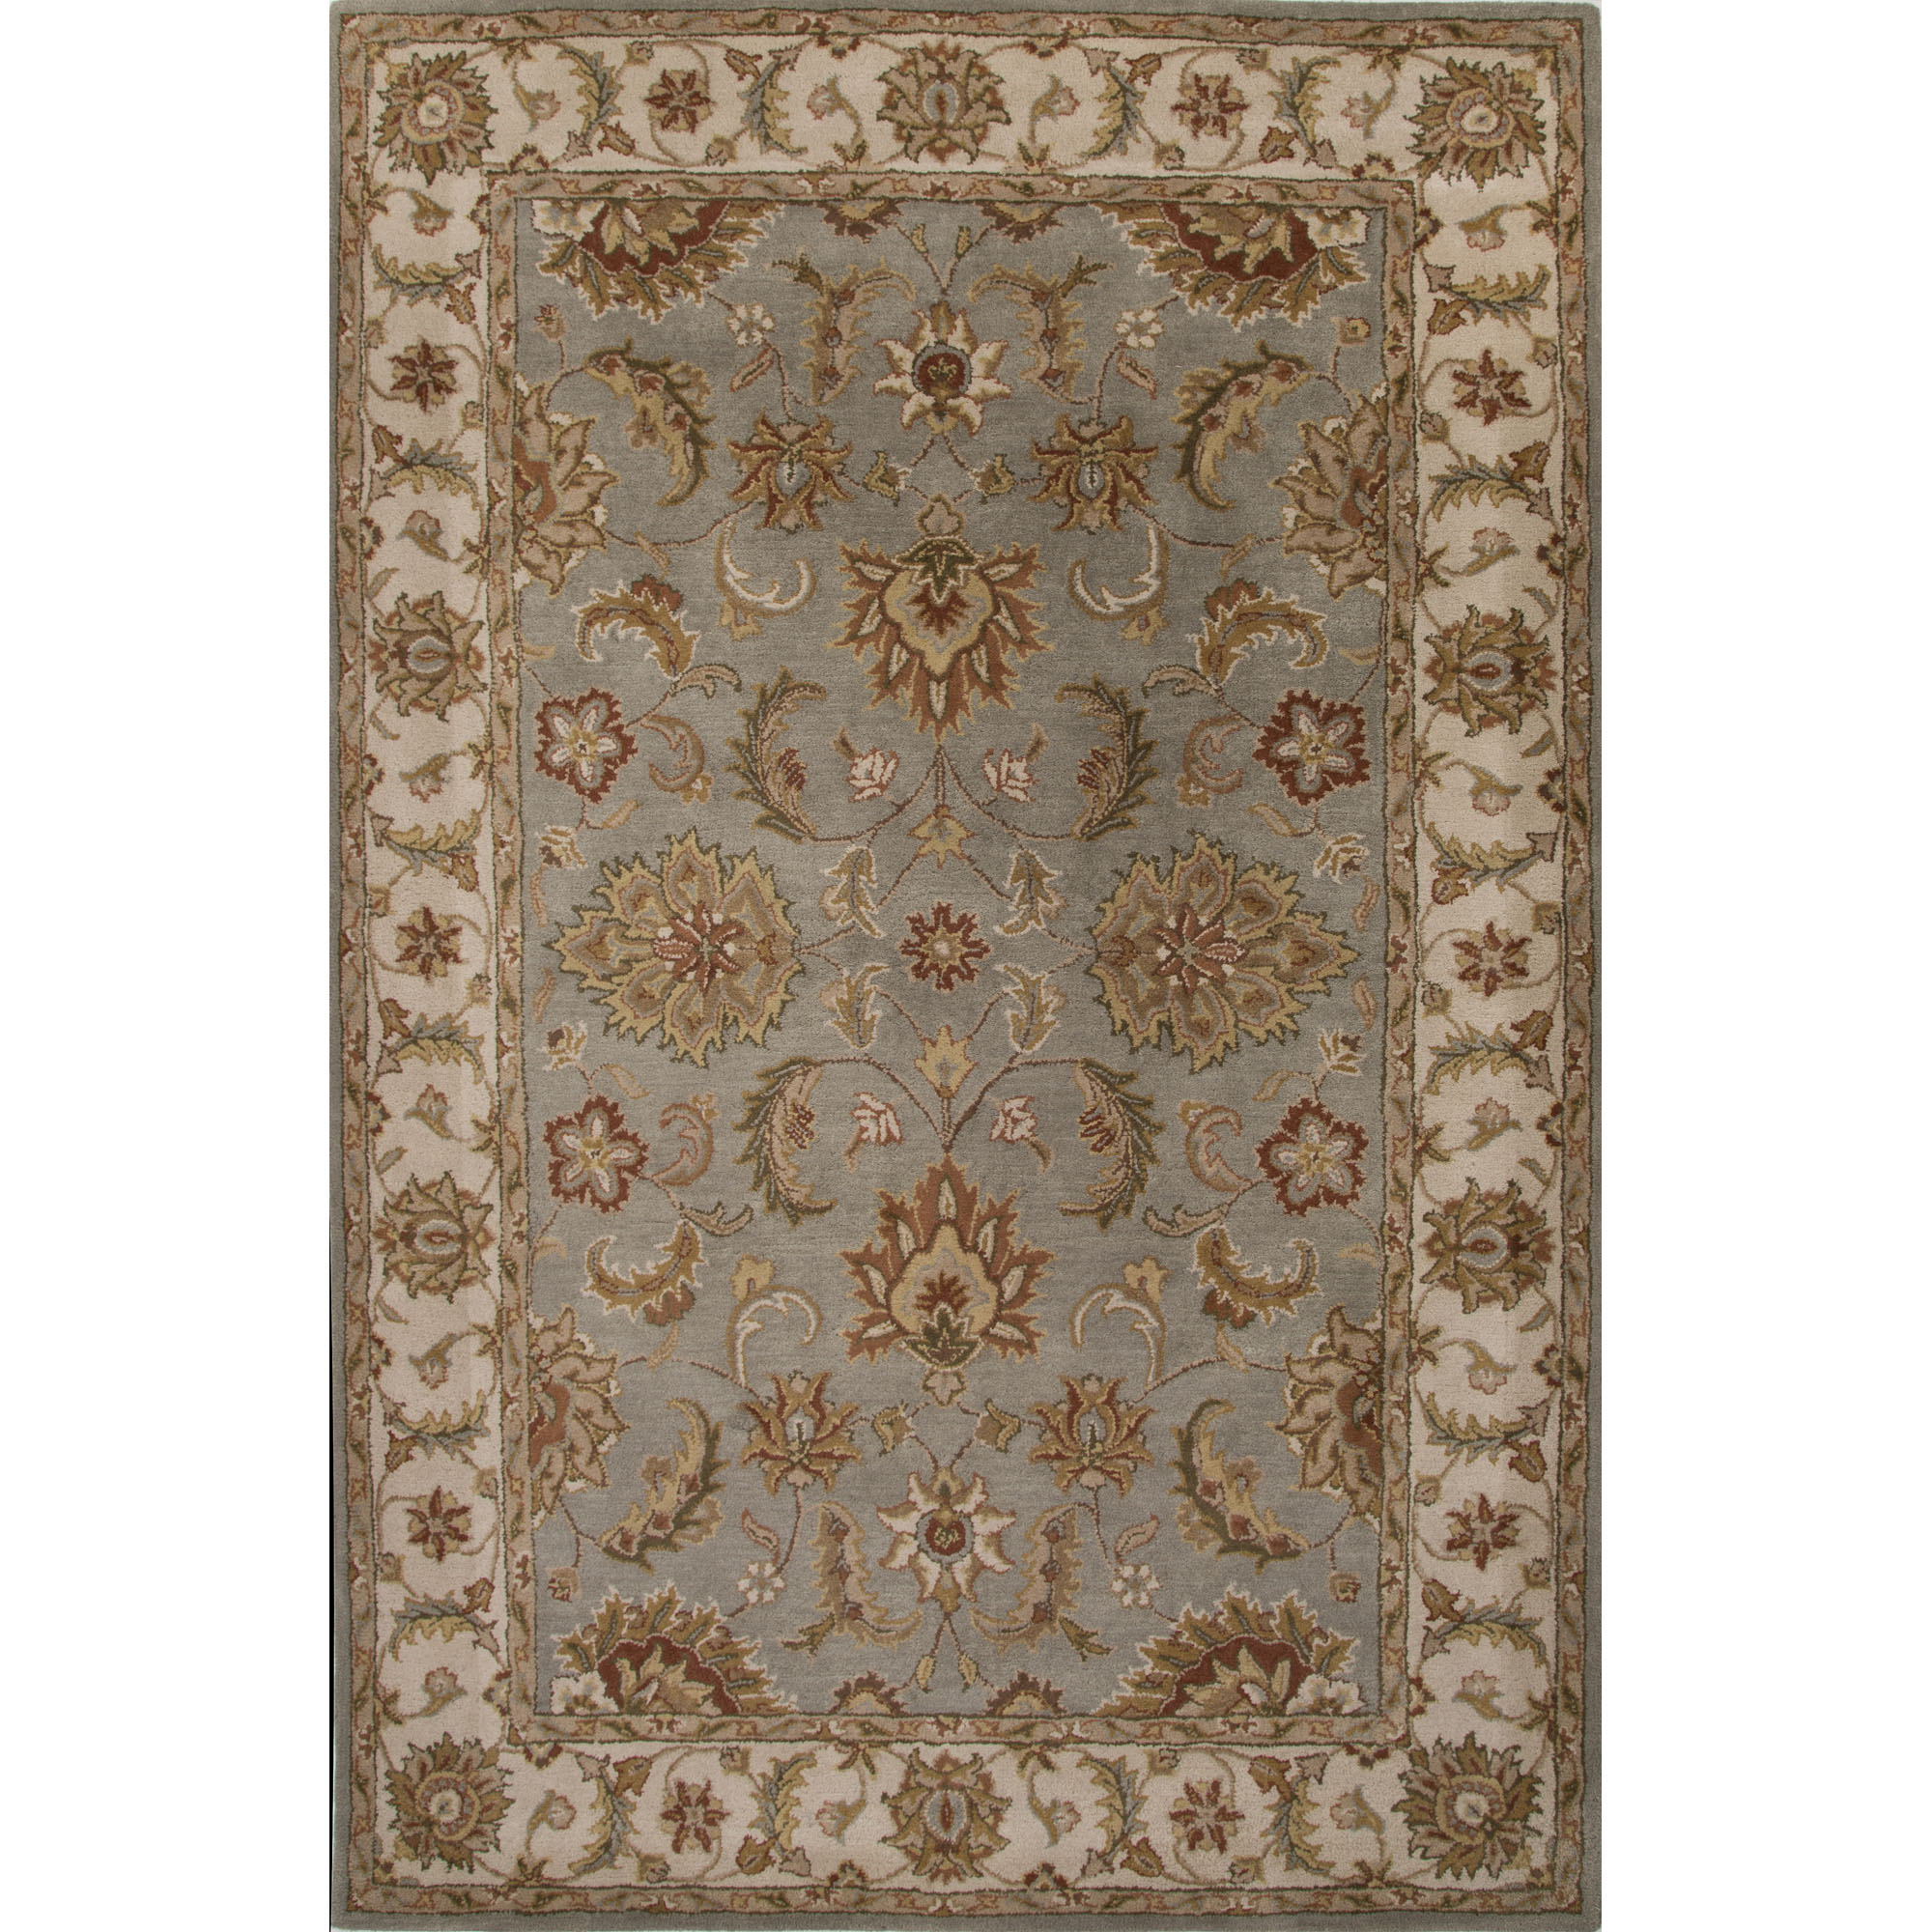 Mythos 12 x 18 Rug by JAIPUR Living at Malouf Furniture Co.